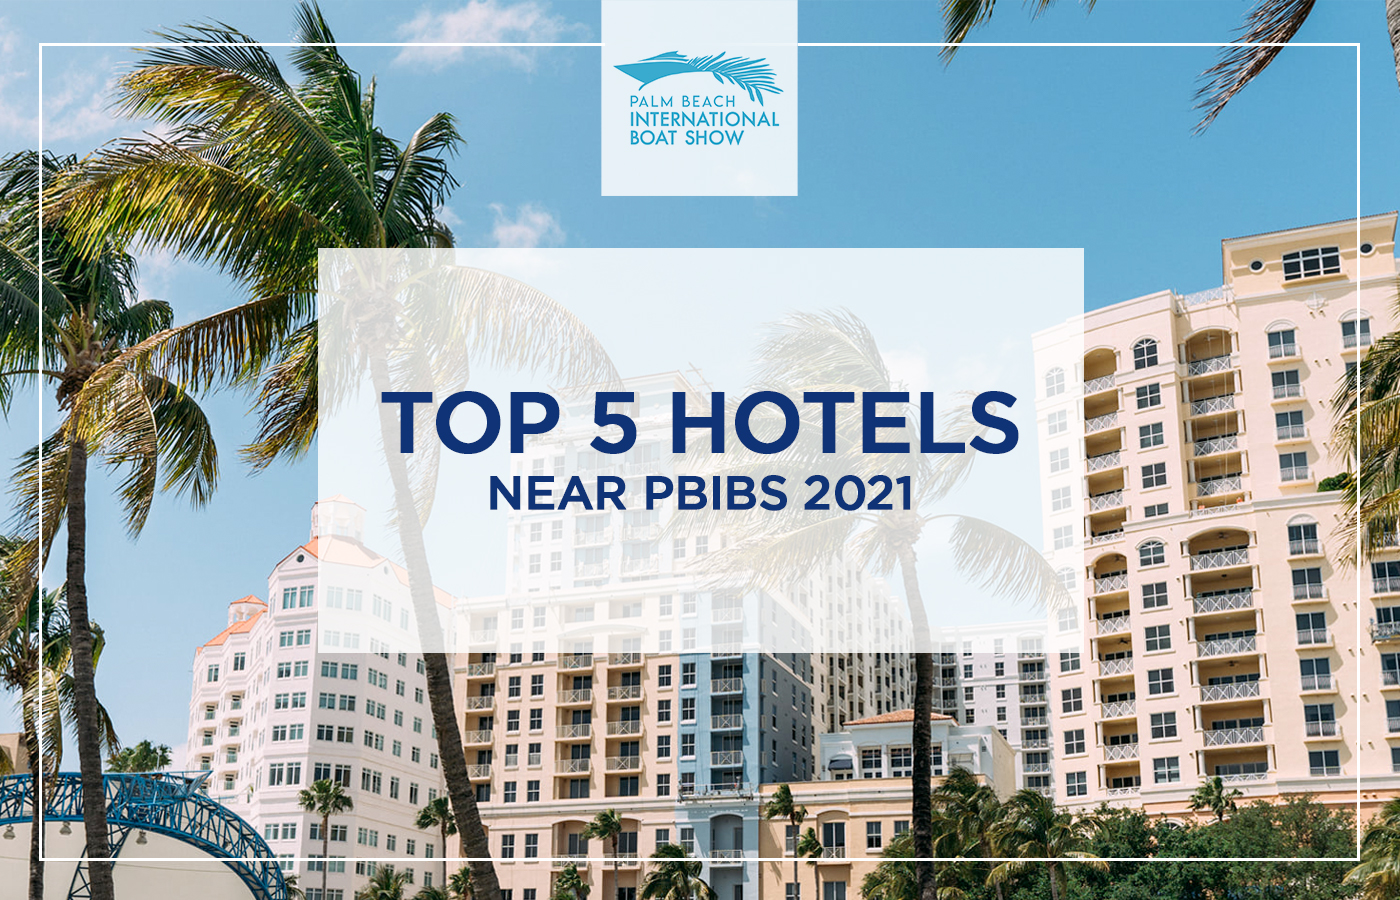 Top Hotels Within A 10 Minute Drive Of The 2021 Palm Beach Boat Show